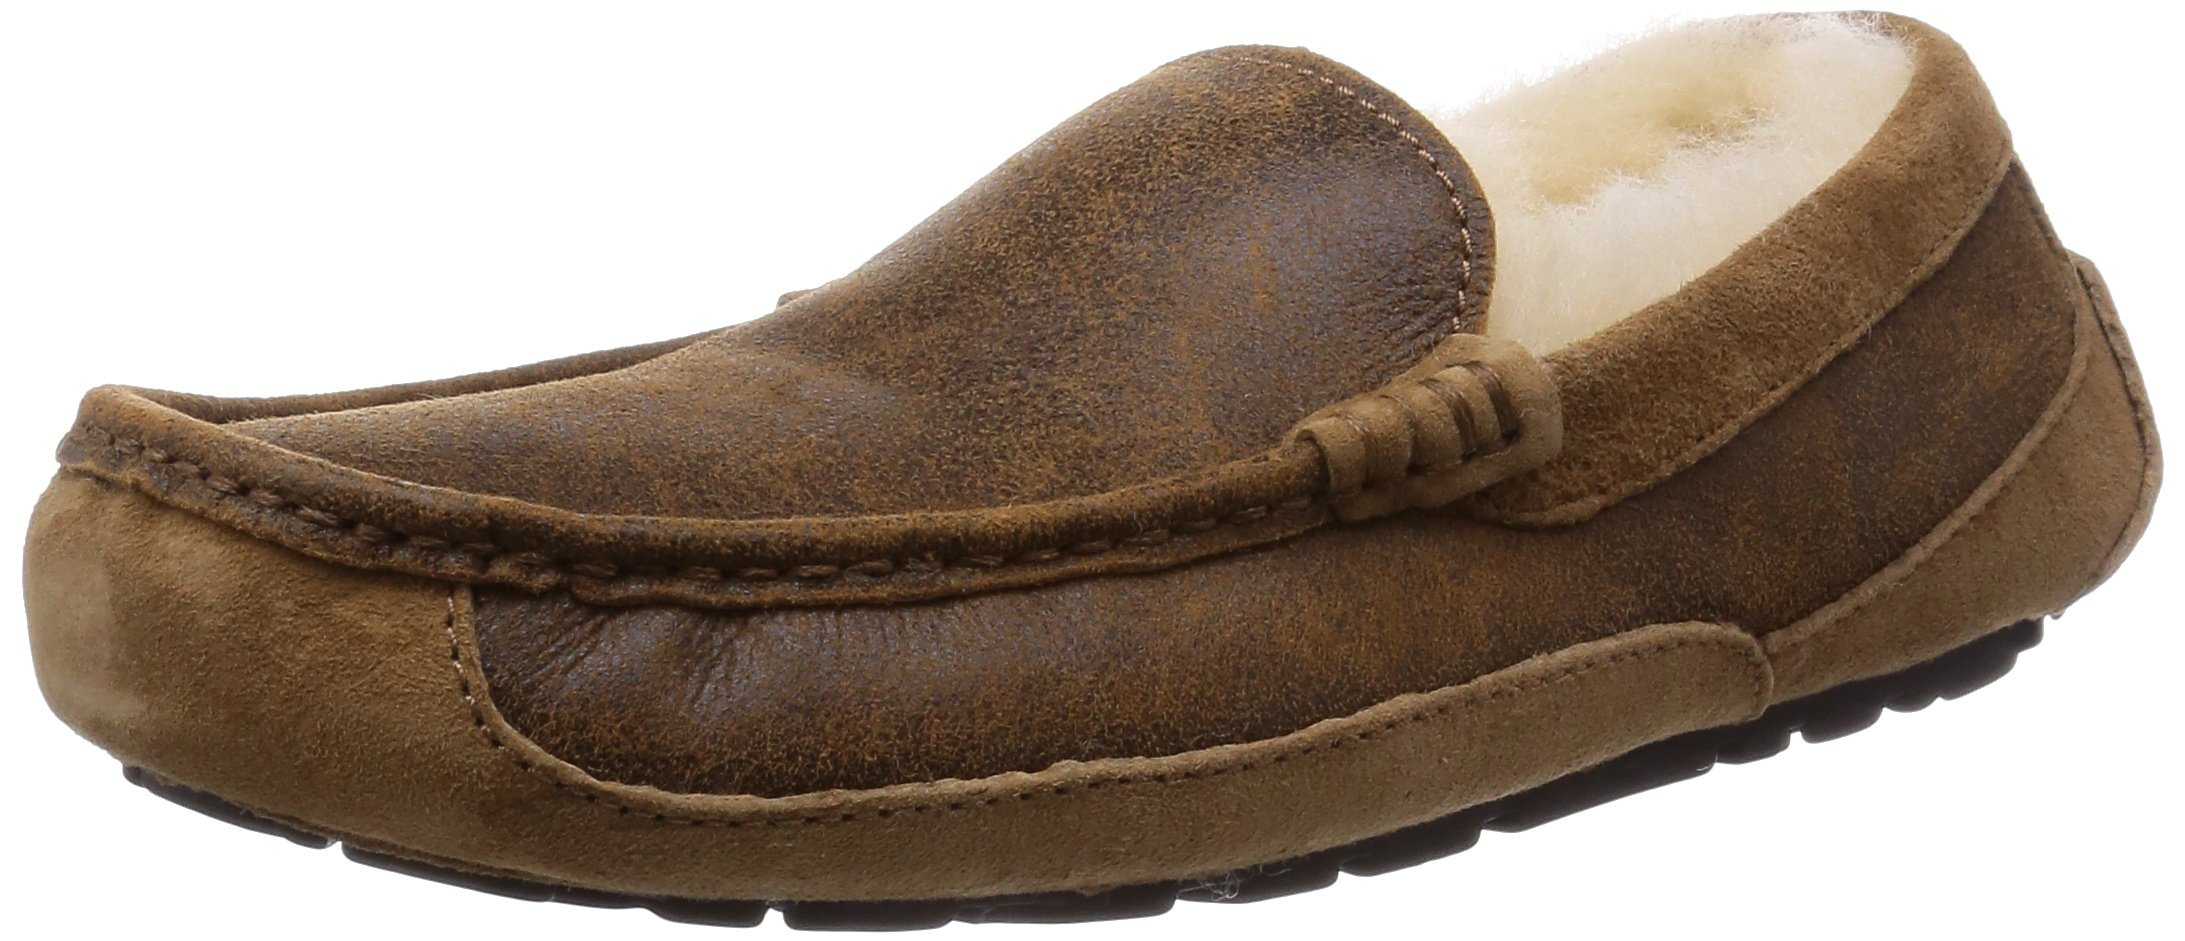 UGG Men's Ascot Bomber Bomber Jacket Chestnut Twinface Loafer 8 D (M) by UGG